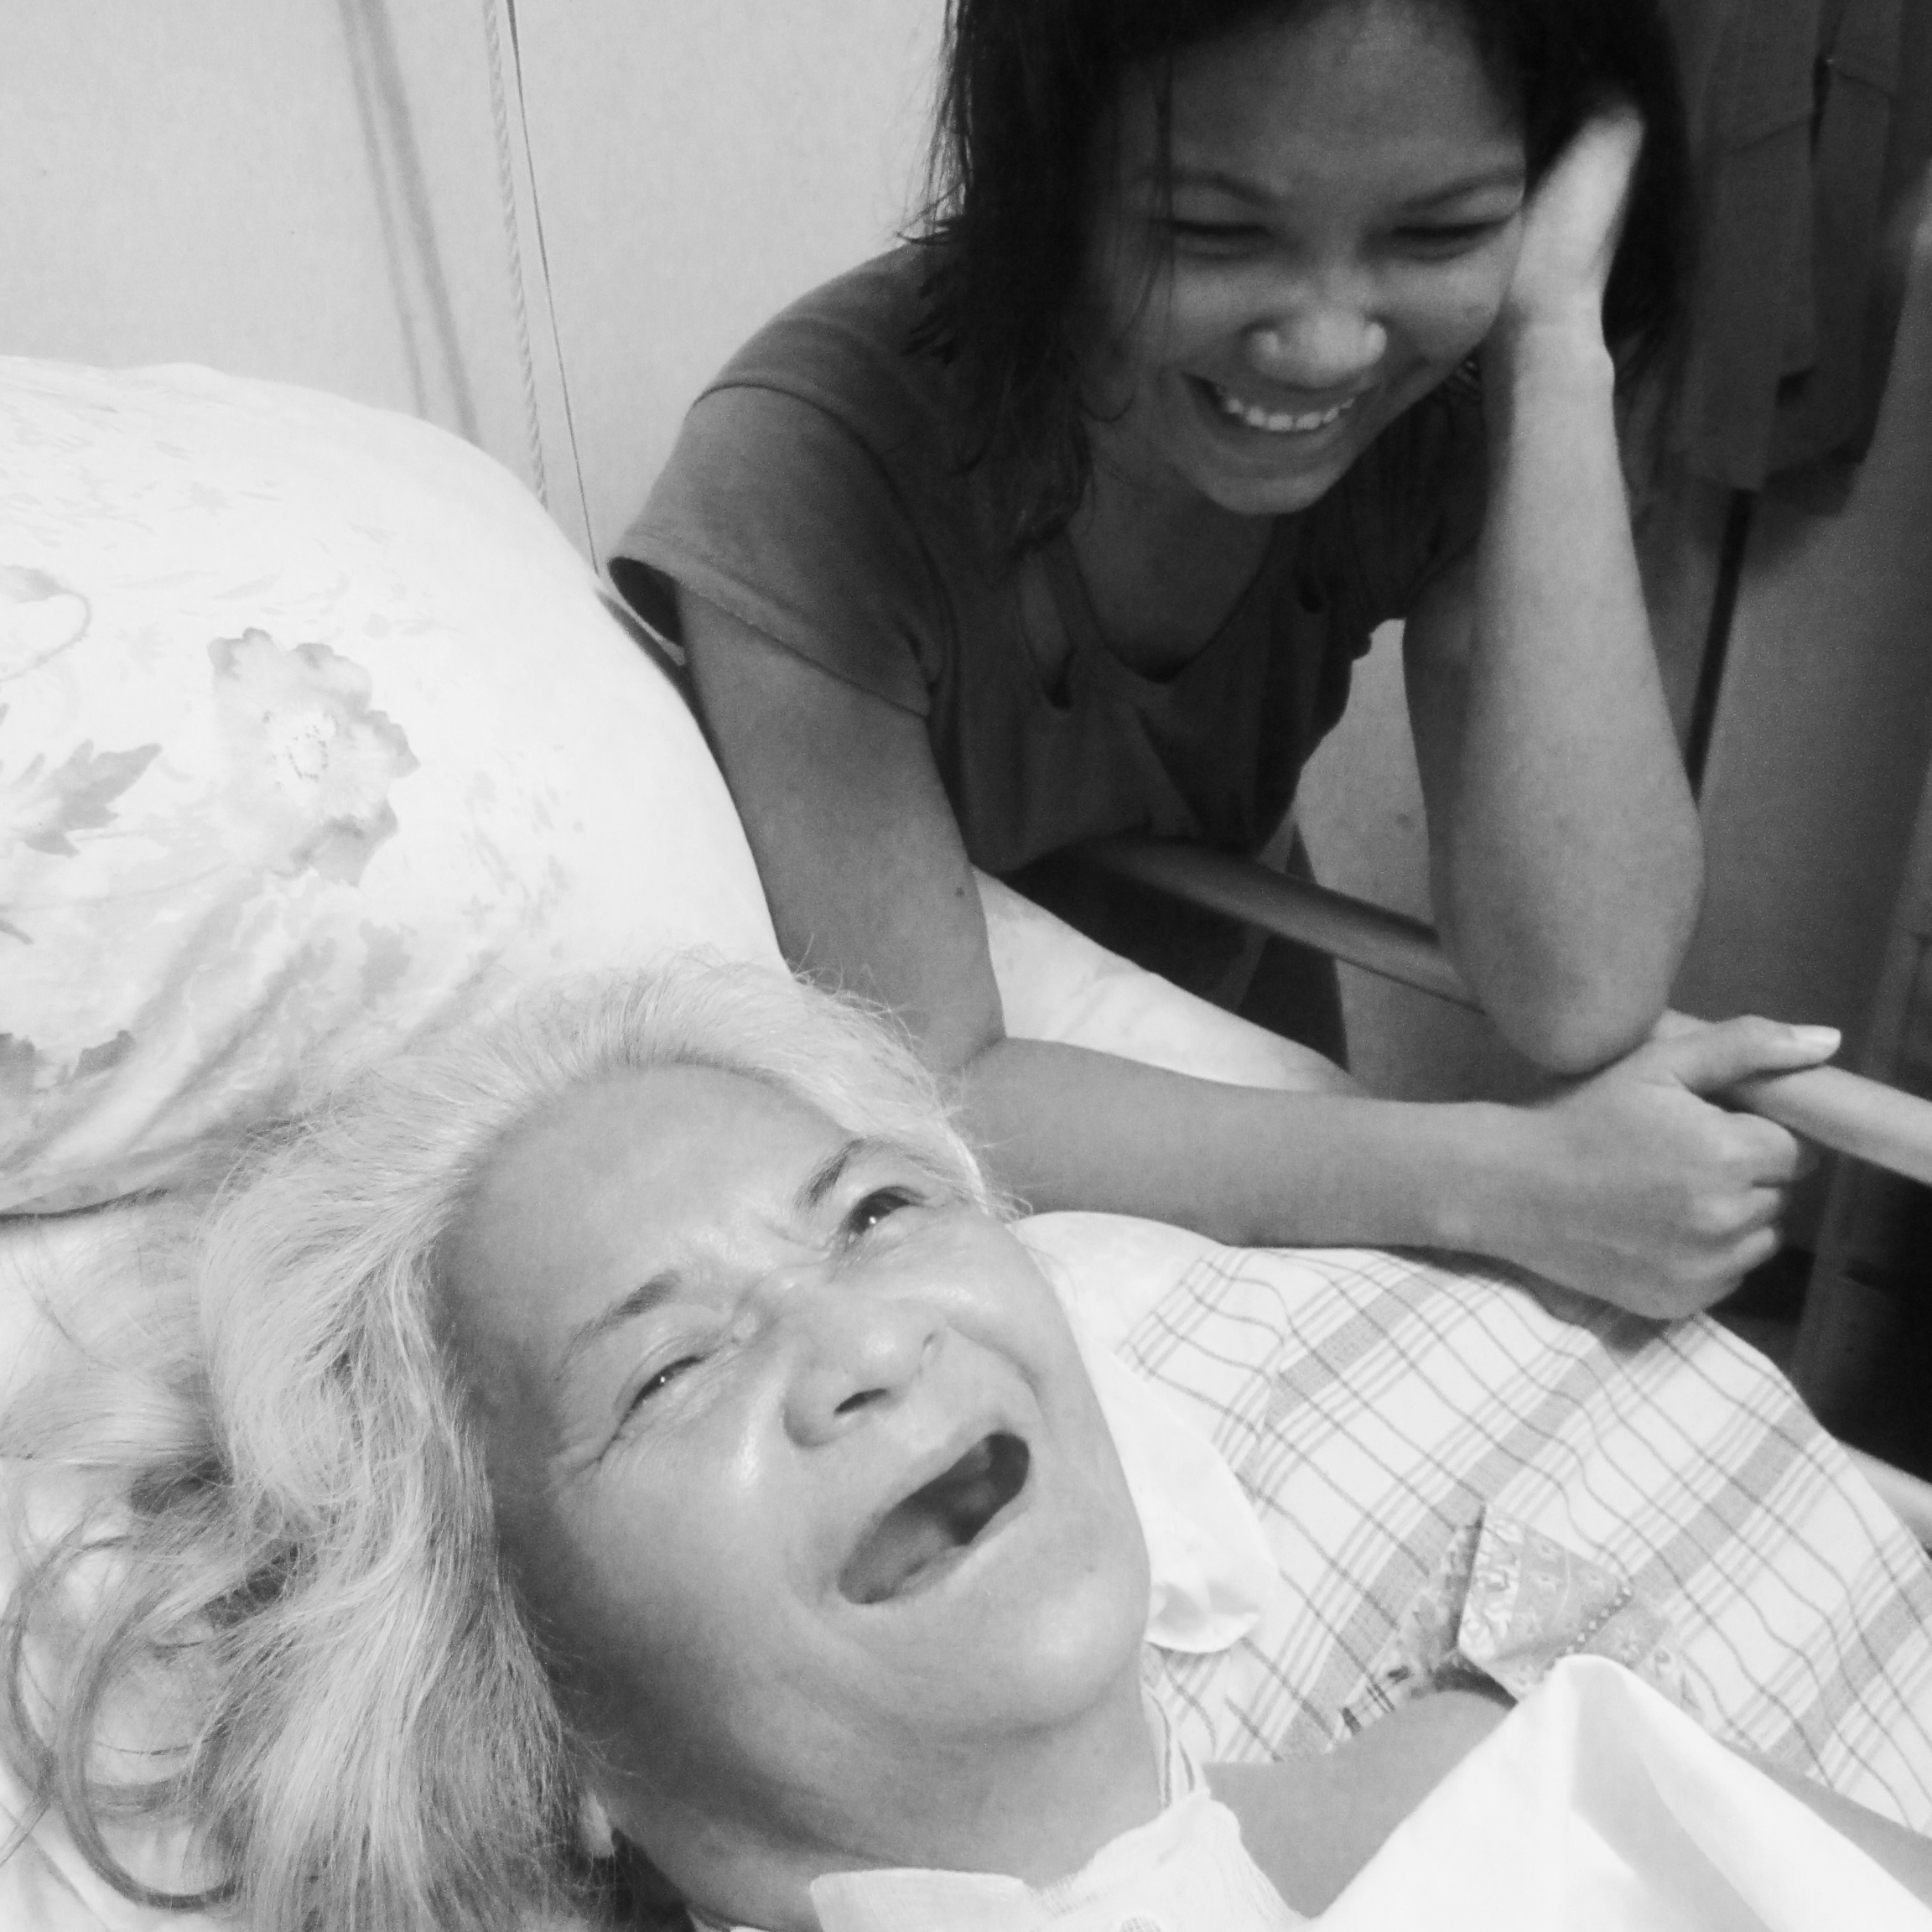 "VOLUNTEER VISITS - Our volunteers bring joy to patients through laughter therapy, music, art, and our ""Happy Room"" project. Through skilled and compassionate service, we do not just uphold dignity: we spread HOPE. Though cure may be no longer possible, care is."